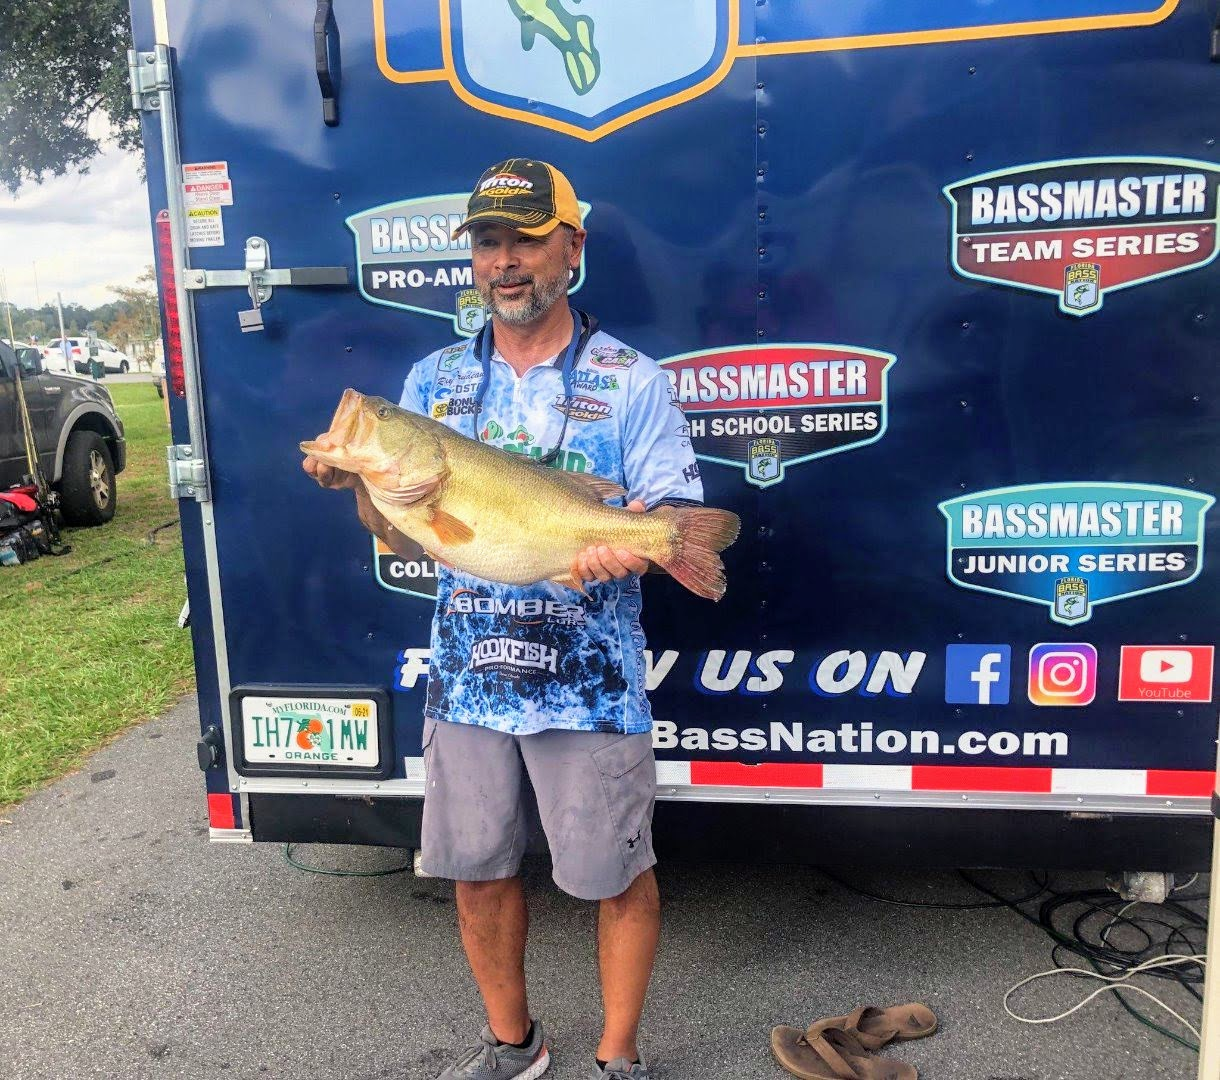 Man standing in front of Bassmaster trailer holding a largemouth bass